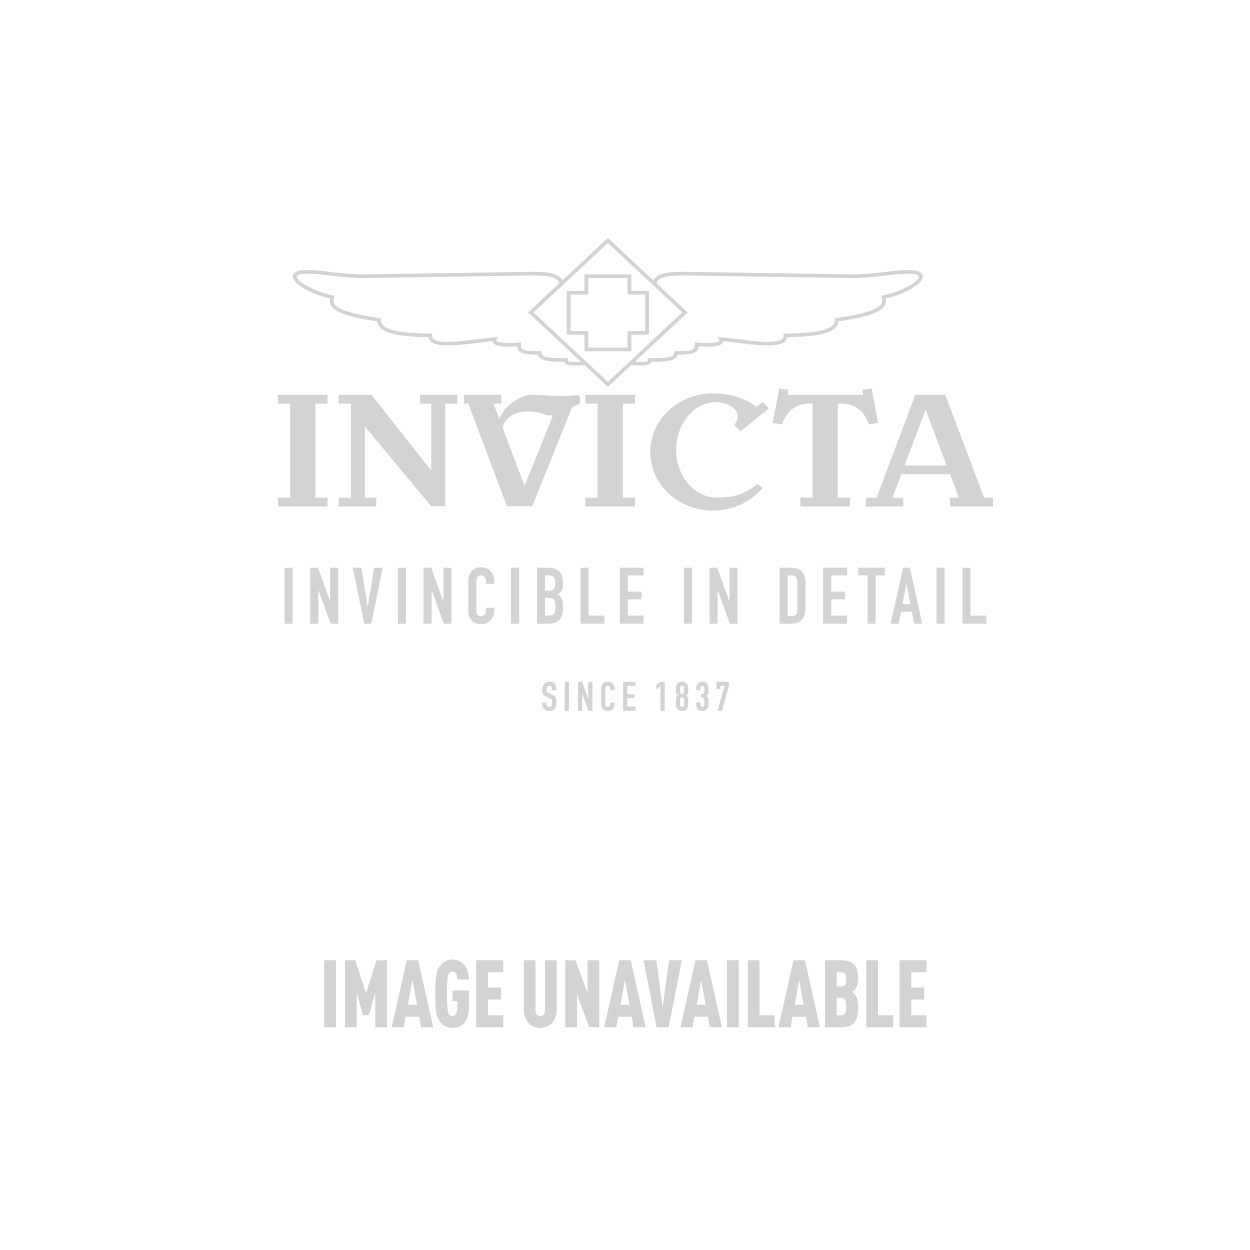 Invicta Sea Hunter Swiss Made Quartz Watch - Stainless Steel case with Red tone Polyurethane band - Model 1691